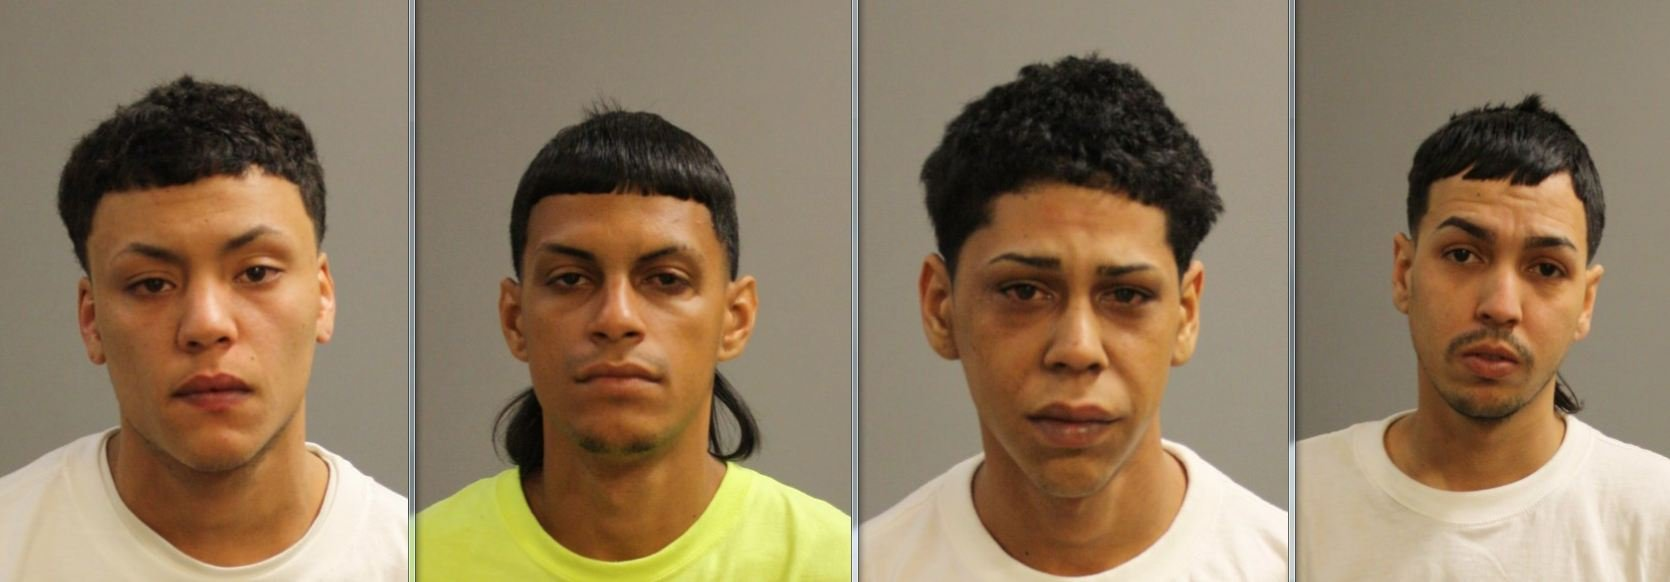 From left to right: Mug shots of Henry Pabon-Santos, 21, Jose Espinoza-Dejesus, 27, Javier Rosado, 23, and Jose Suarez, 28.